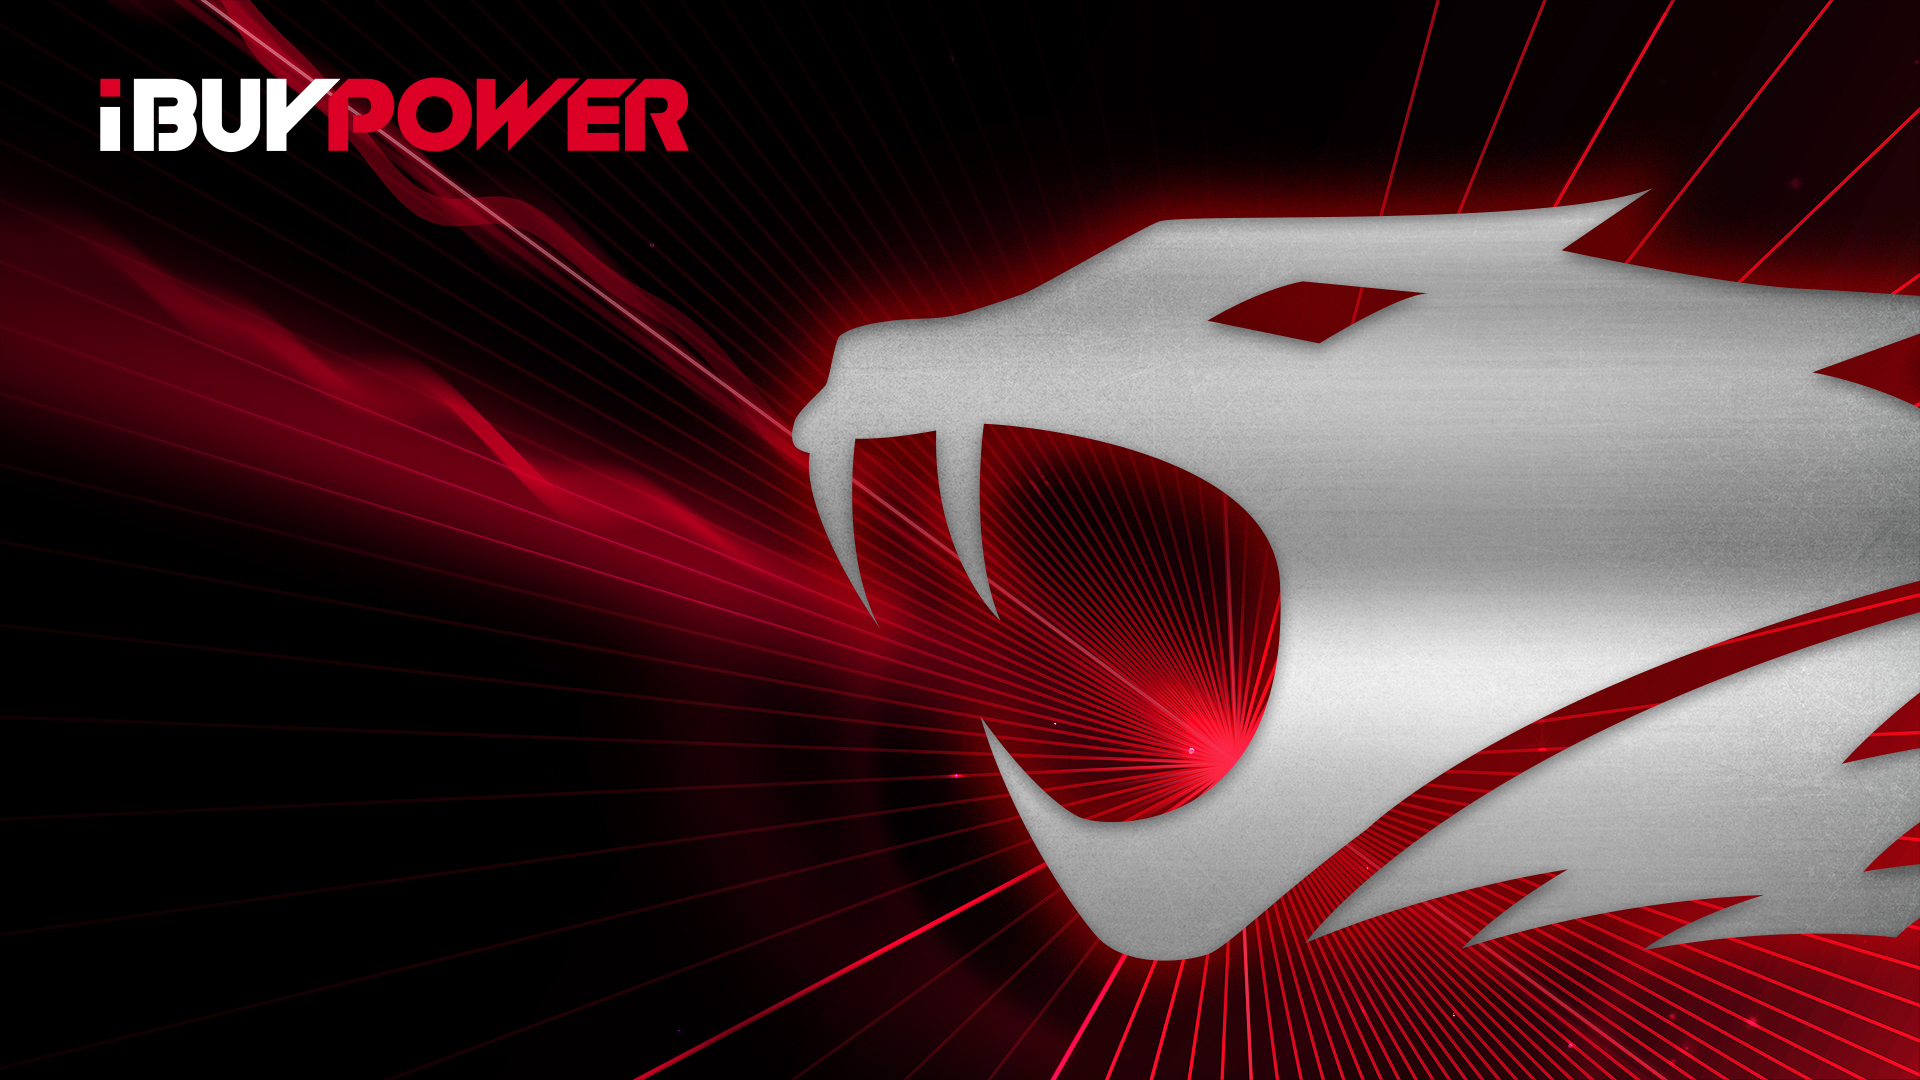 Wallpaper Ibuypower